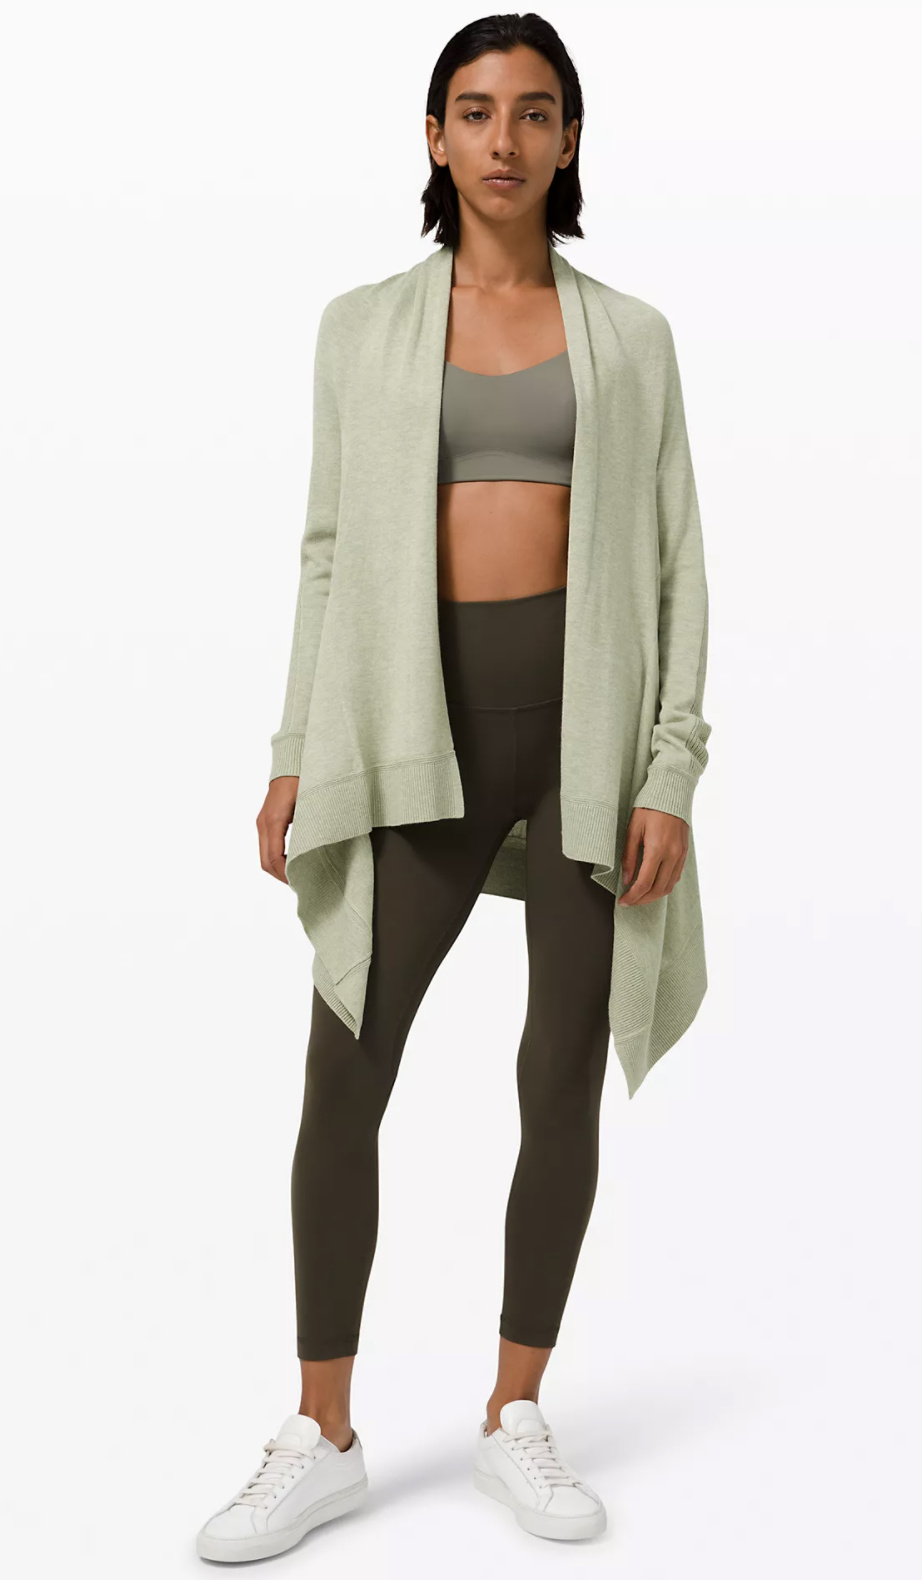 Cashlu Knit Wrap - Lululemon, $109 (Originally $158)